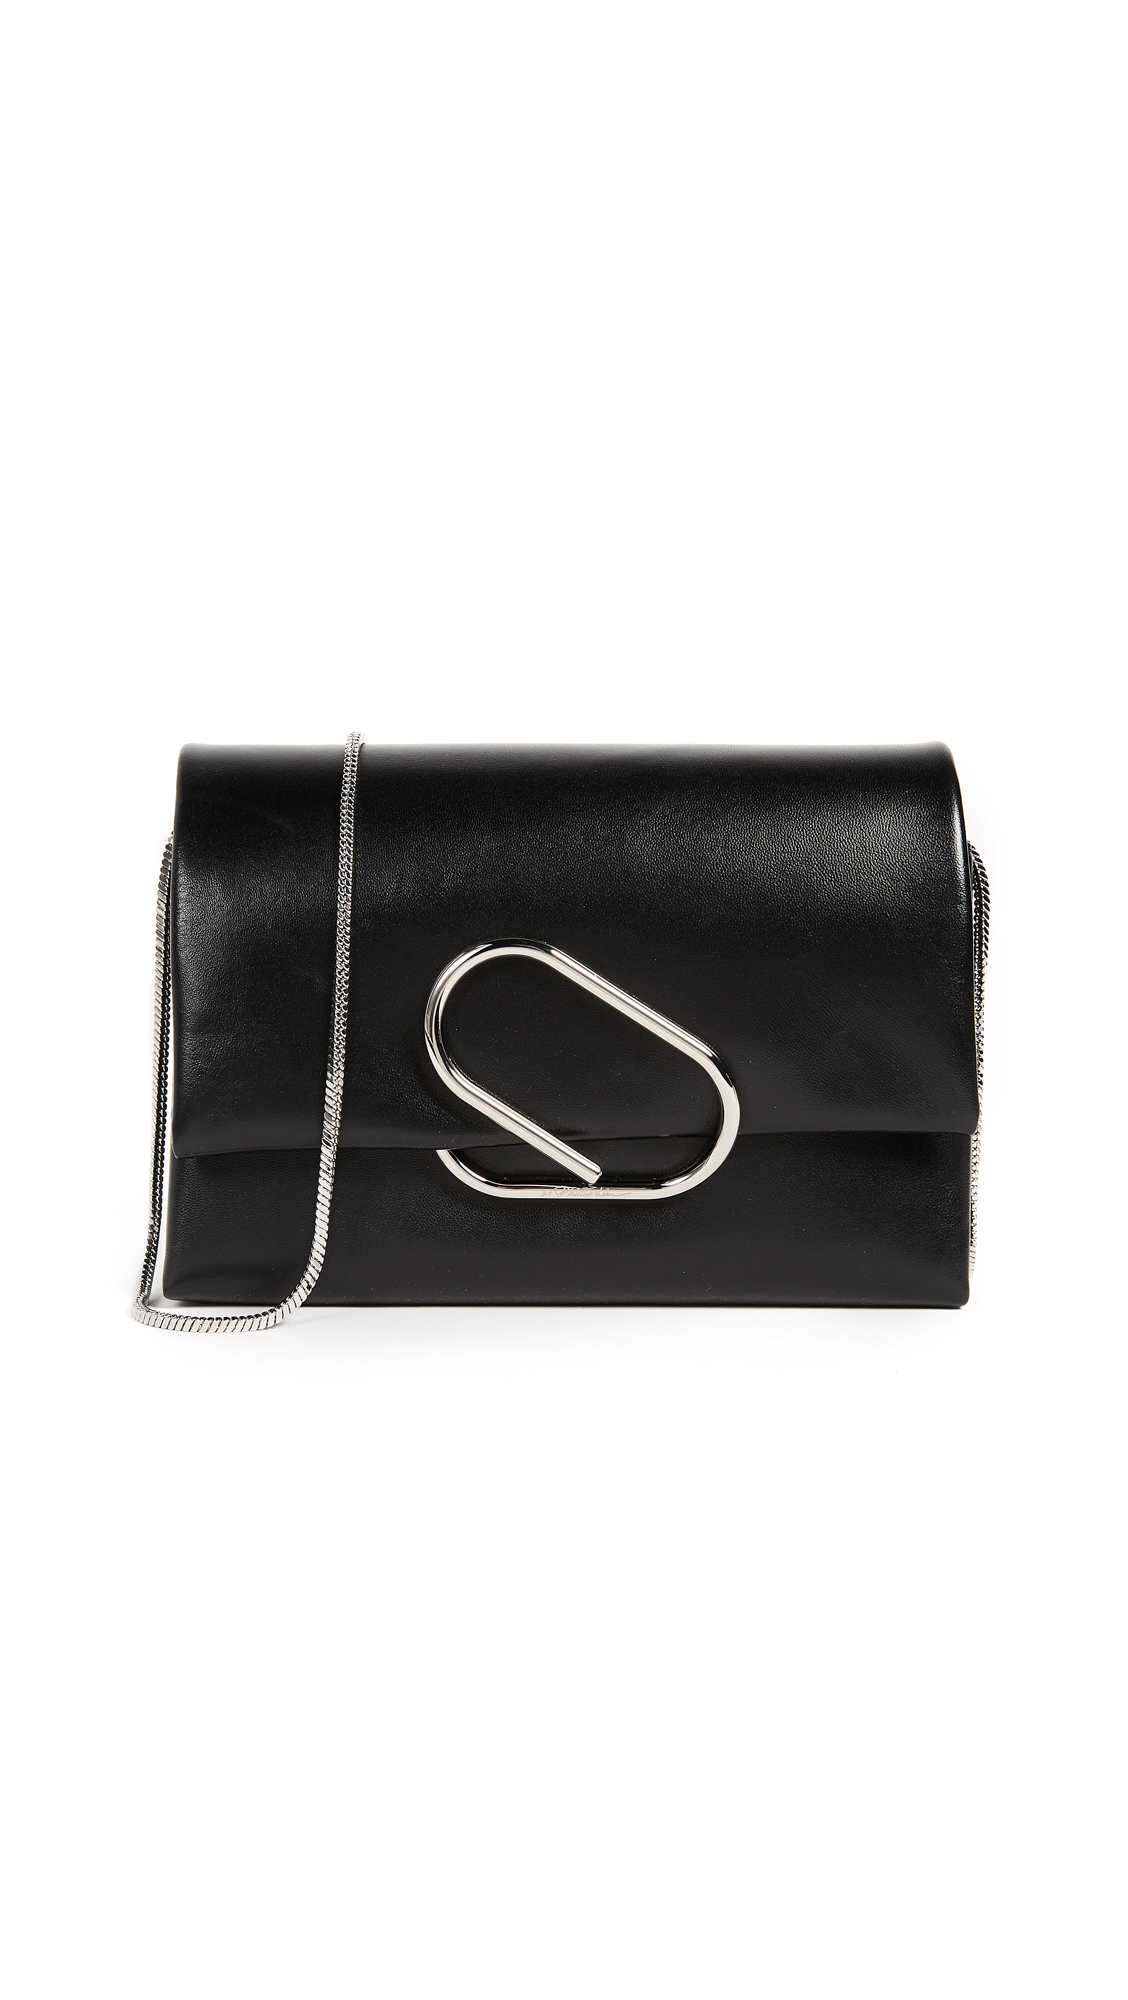 3.1 Phillip Lim Alix Soft Flap Clutch - Black